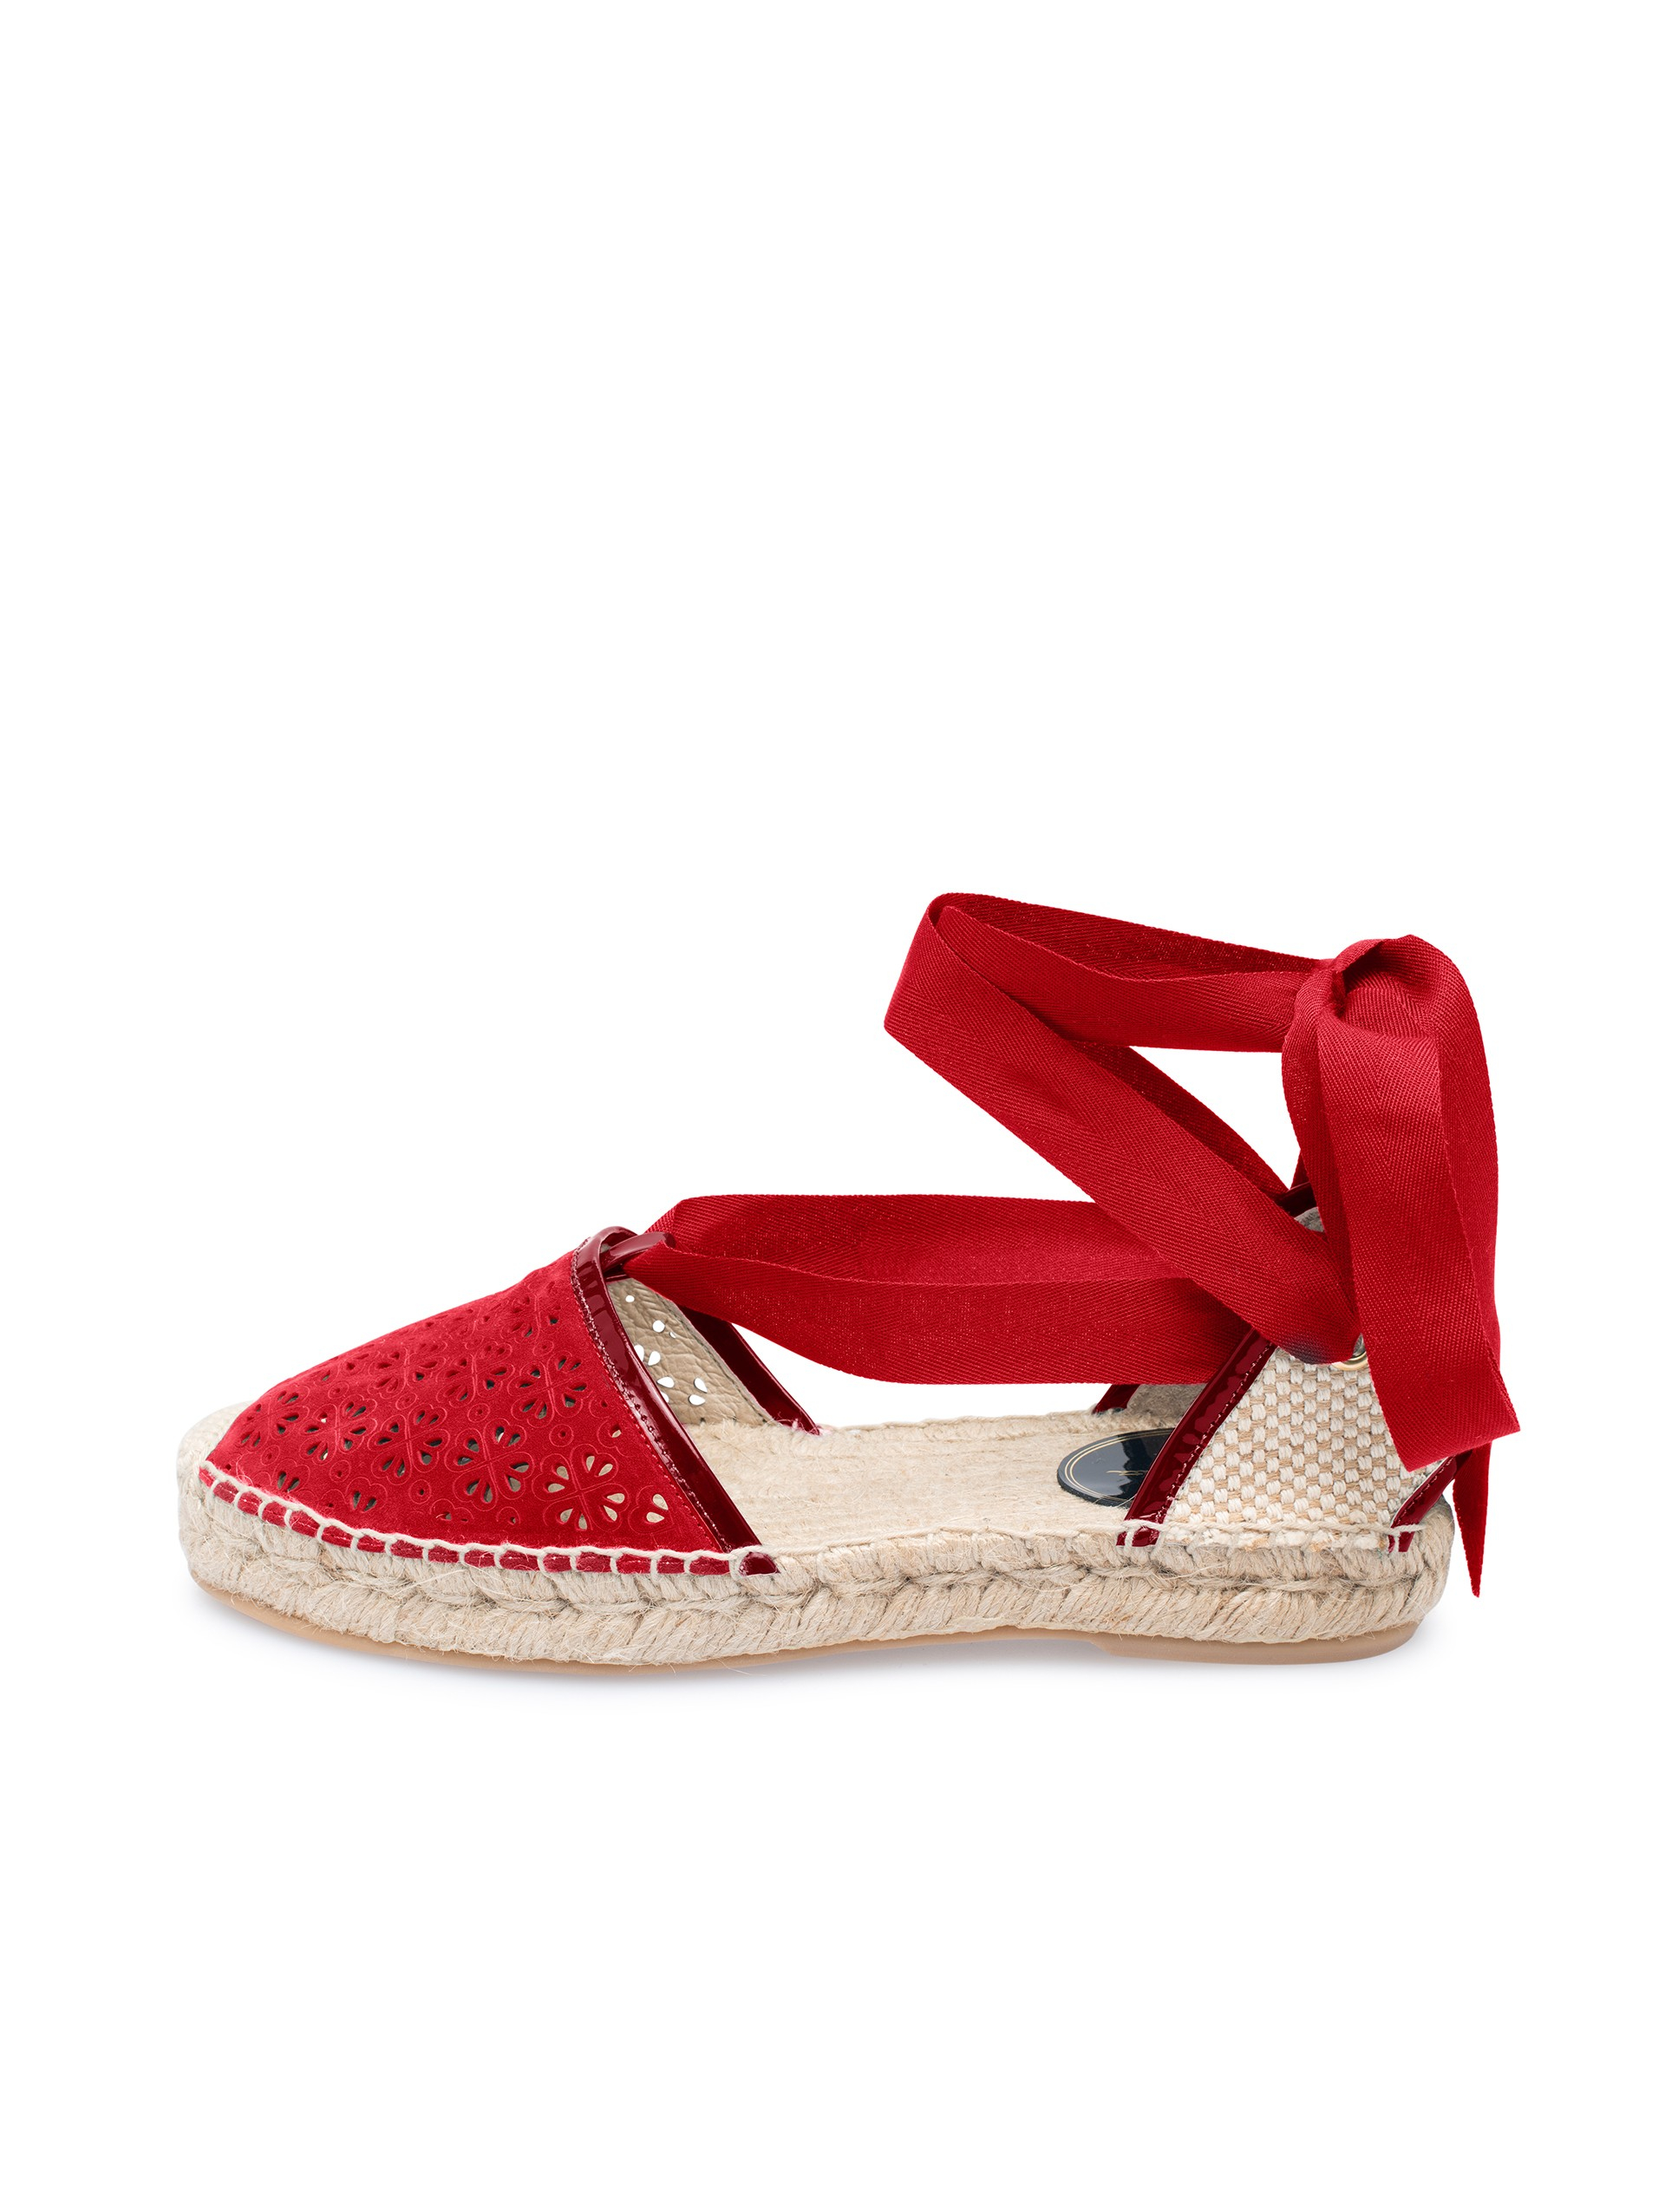 Ruby Laser Perforated Suede Sandals 9AFGMT6r